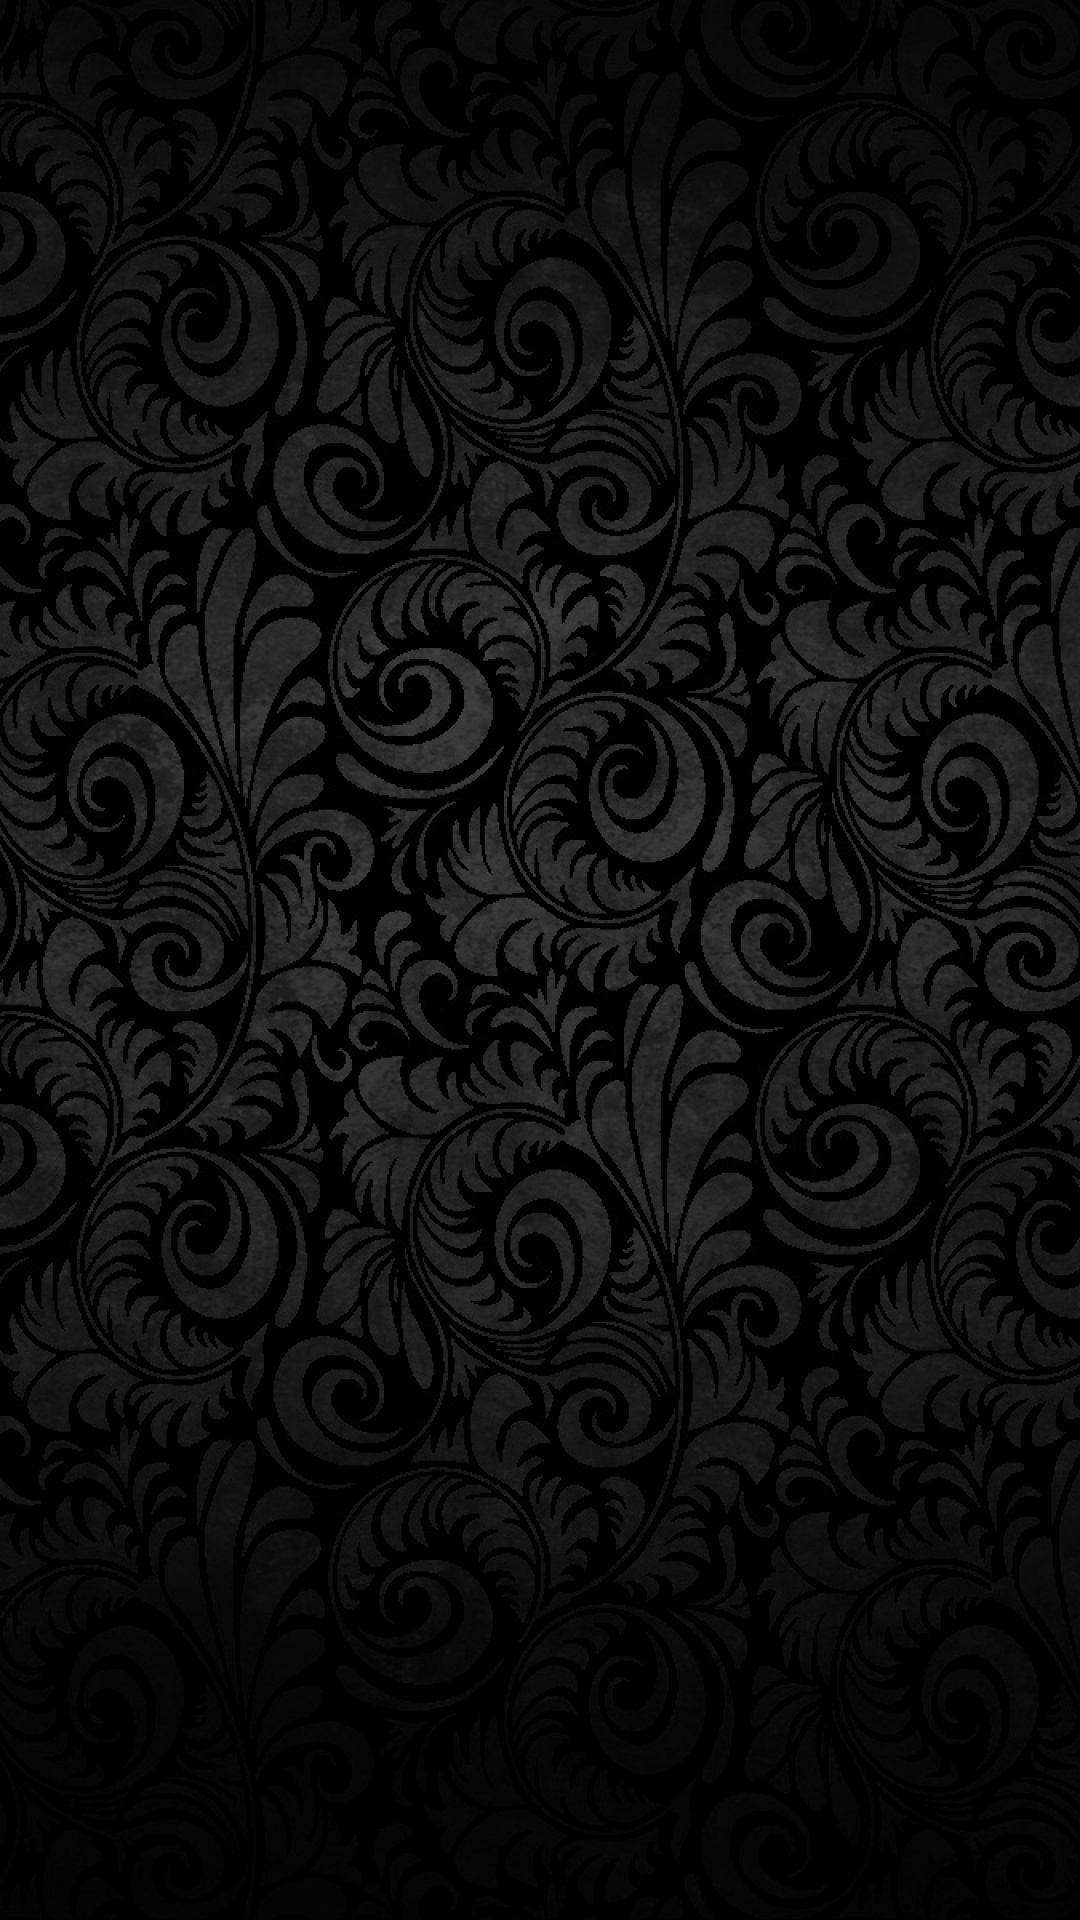 50 Black Wallpaper In Fhd For Free Download For Android